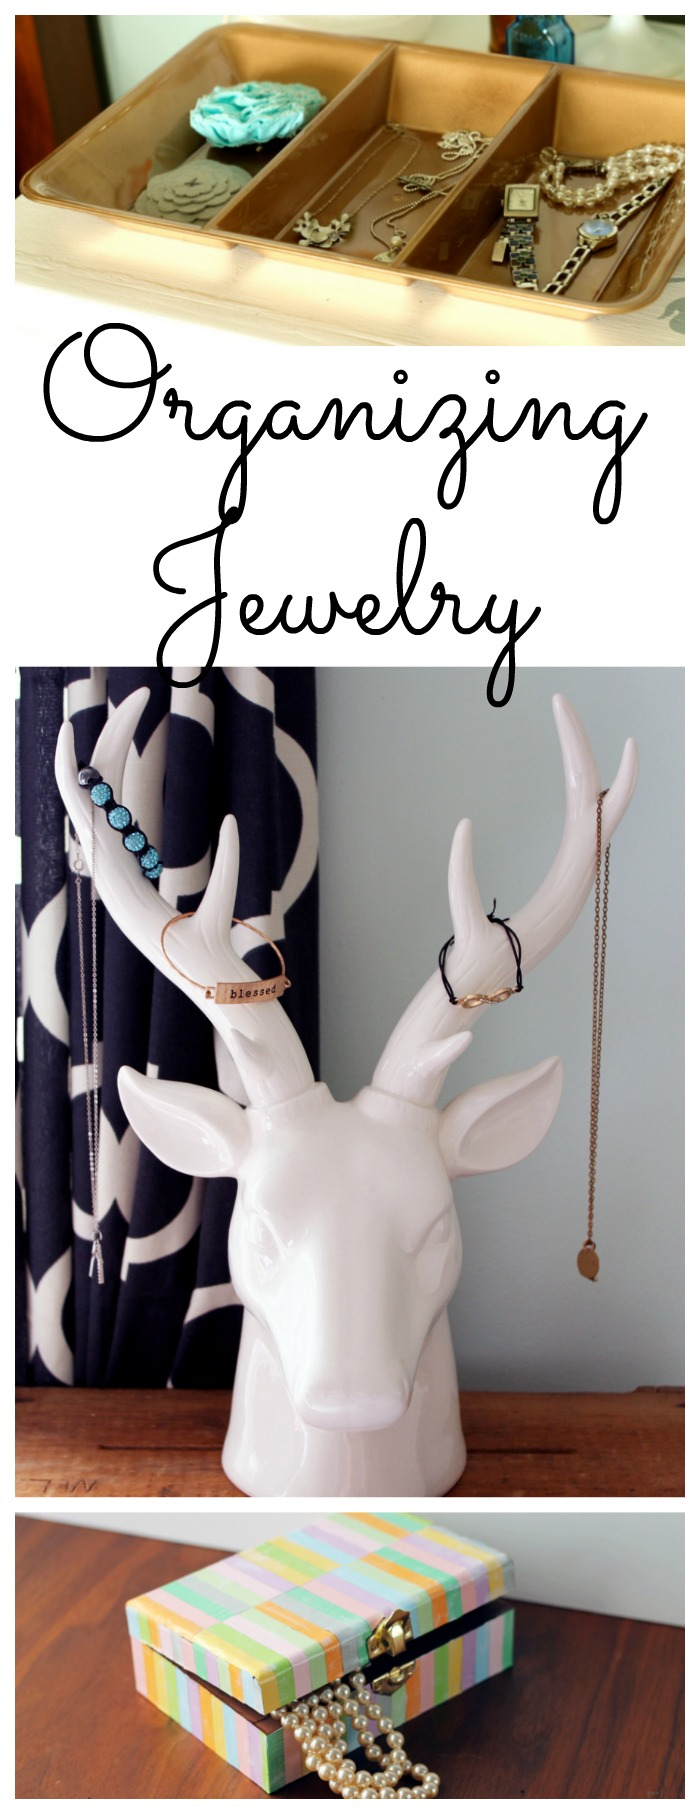 Ideas for organizing jewelry in your home!